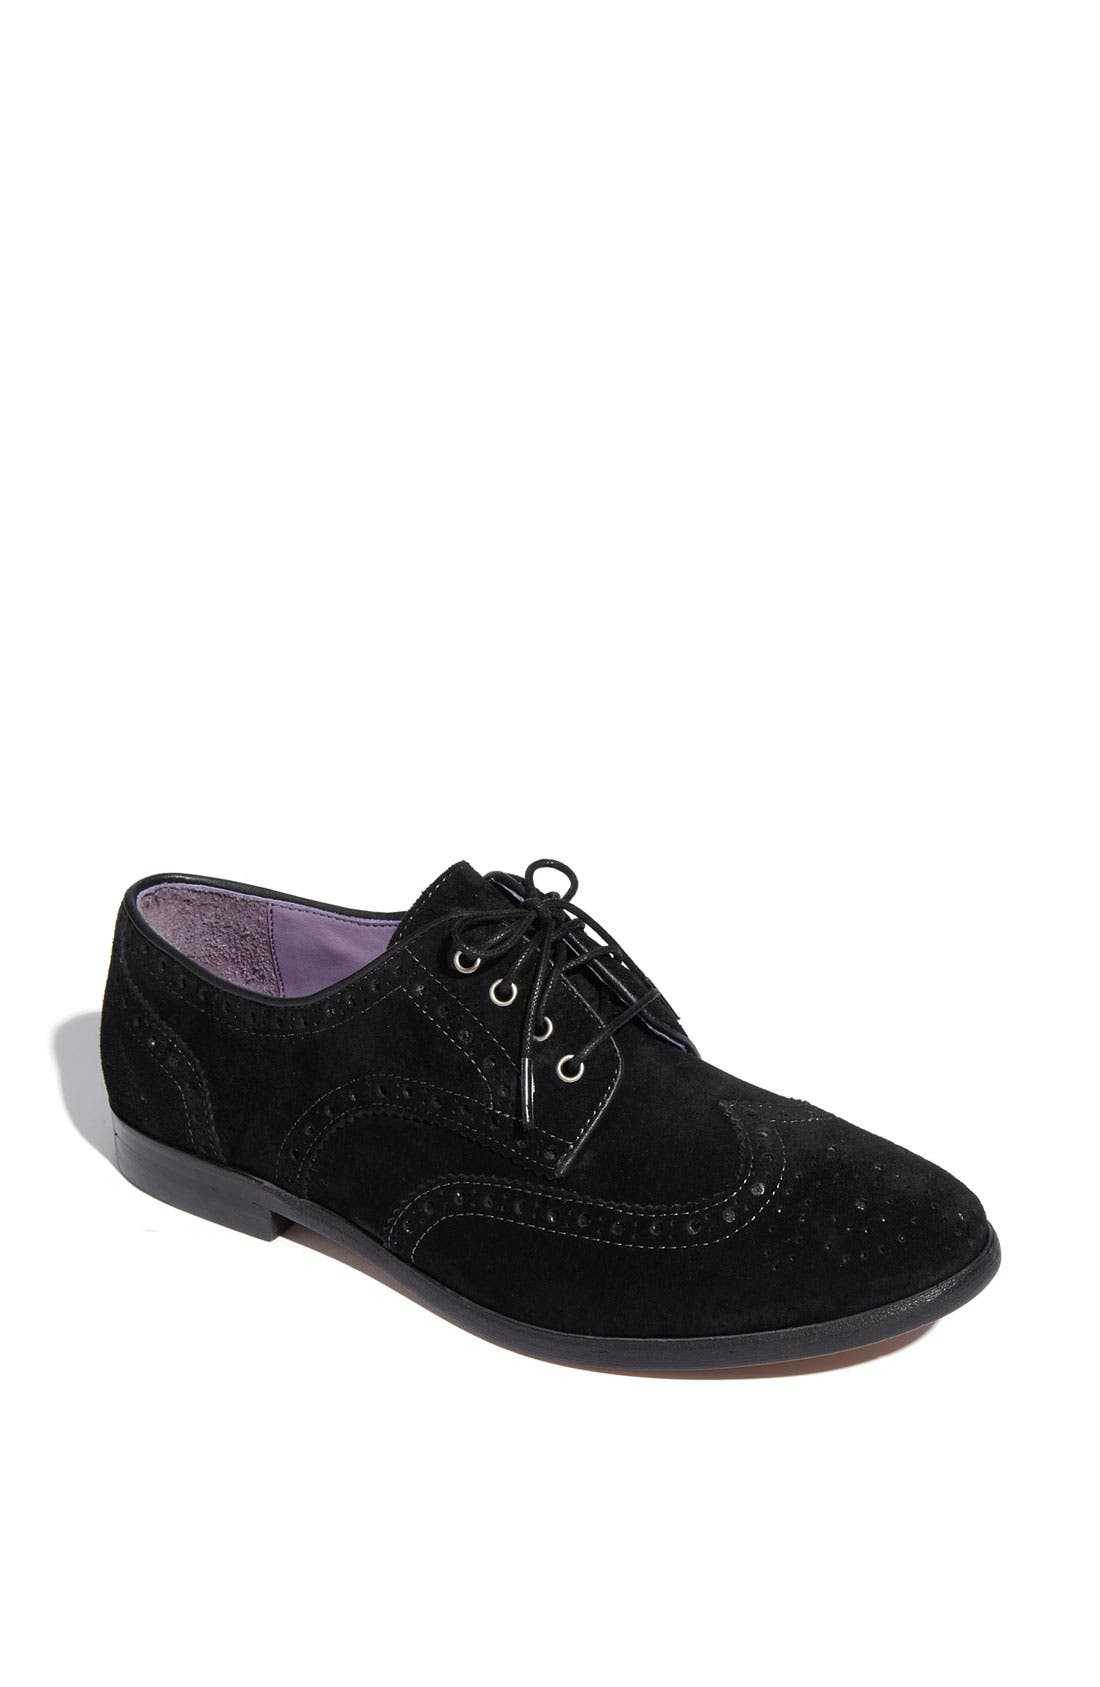 Anna Sui for Hush Puppies<sup>®</sup> 'Lindley' Oxford,                             Main thumbnail 1, color,                             001